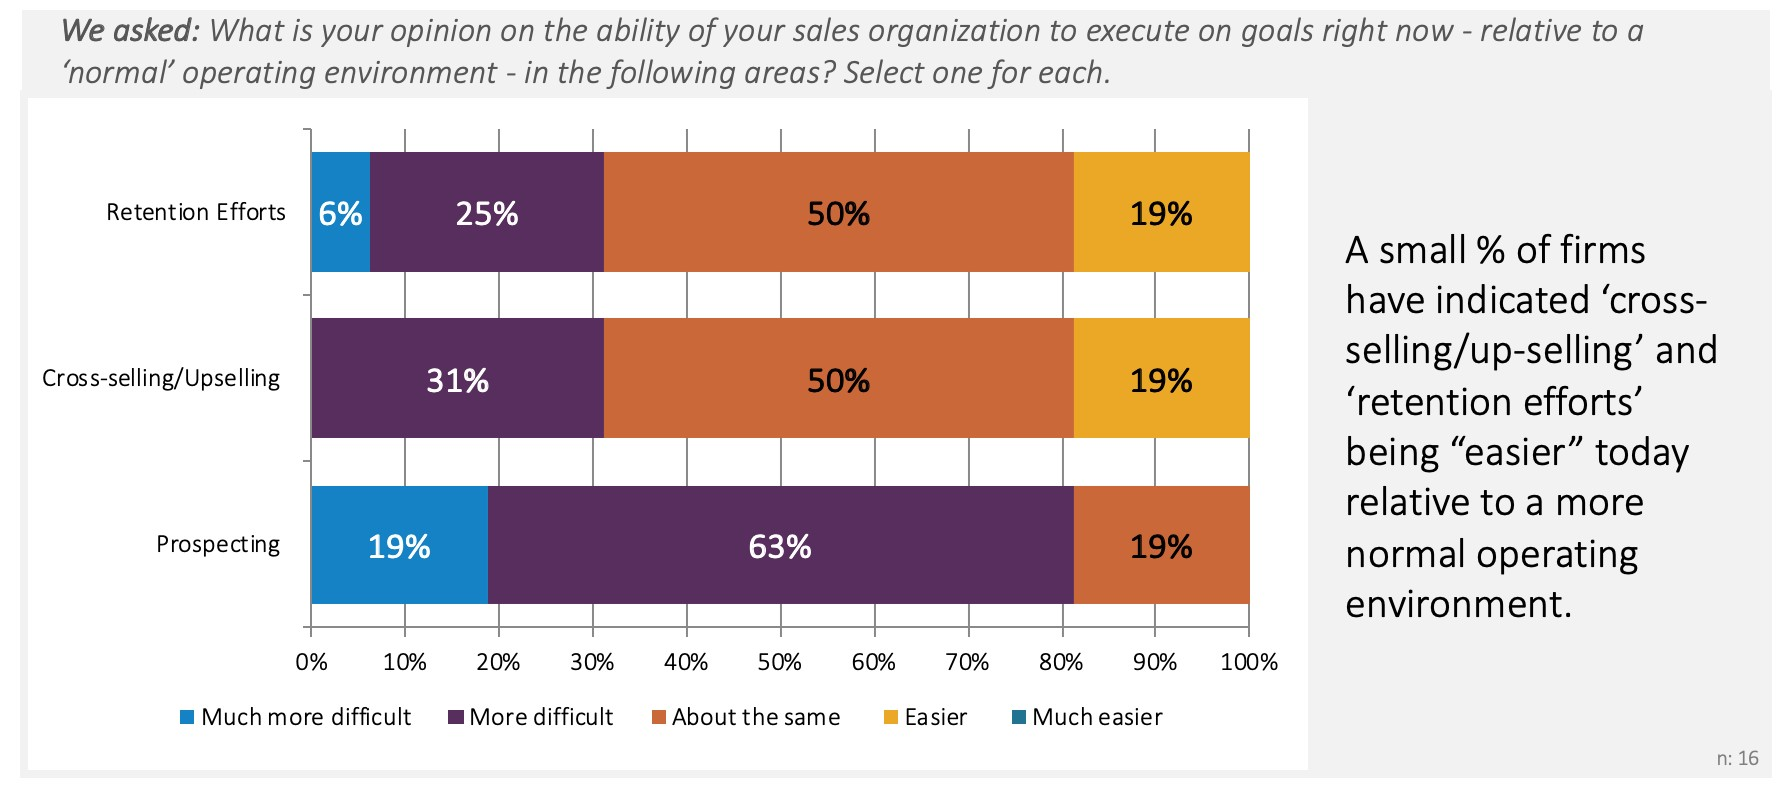 Chart shows survey responses as to a sales organization's ability to meet goals in the current operating environment